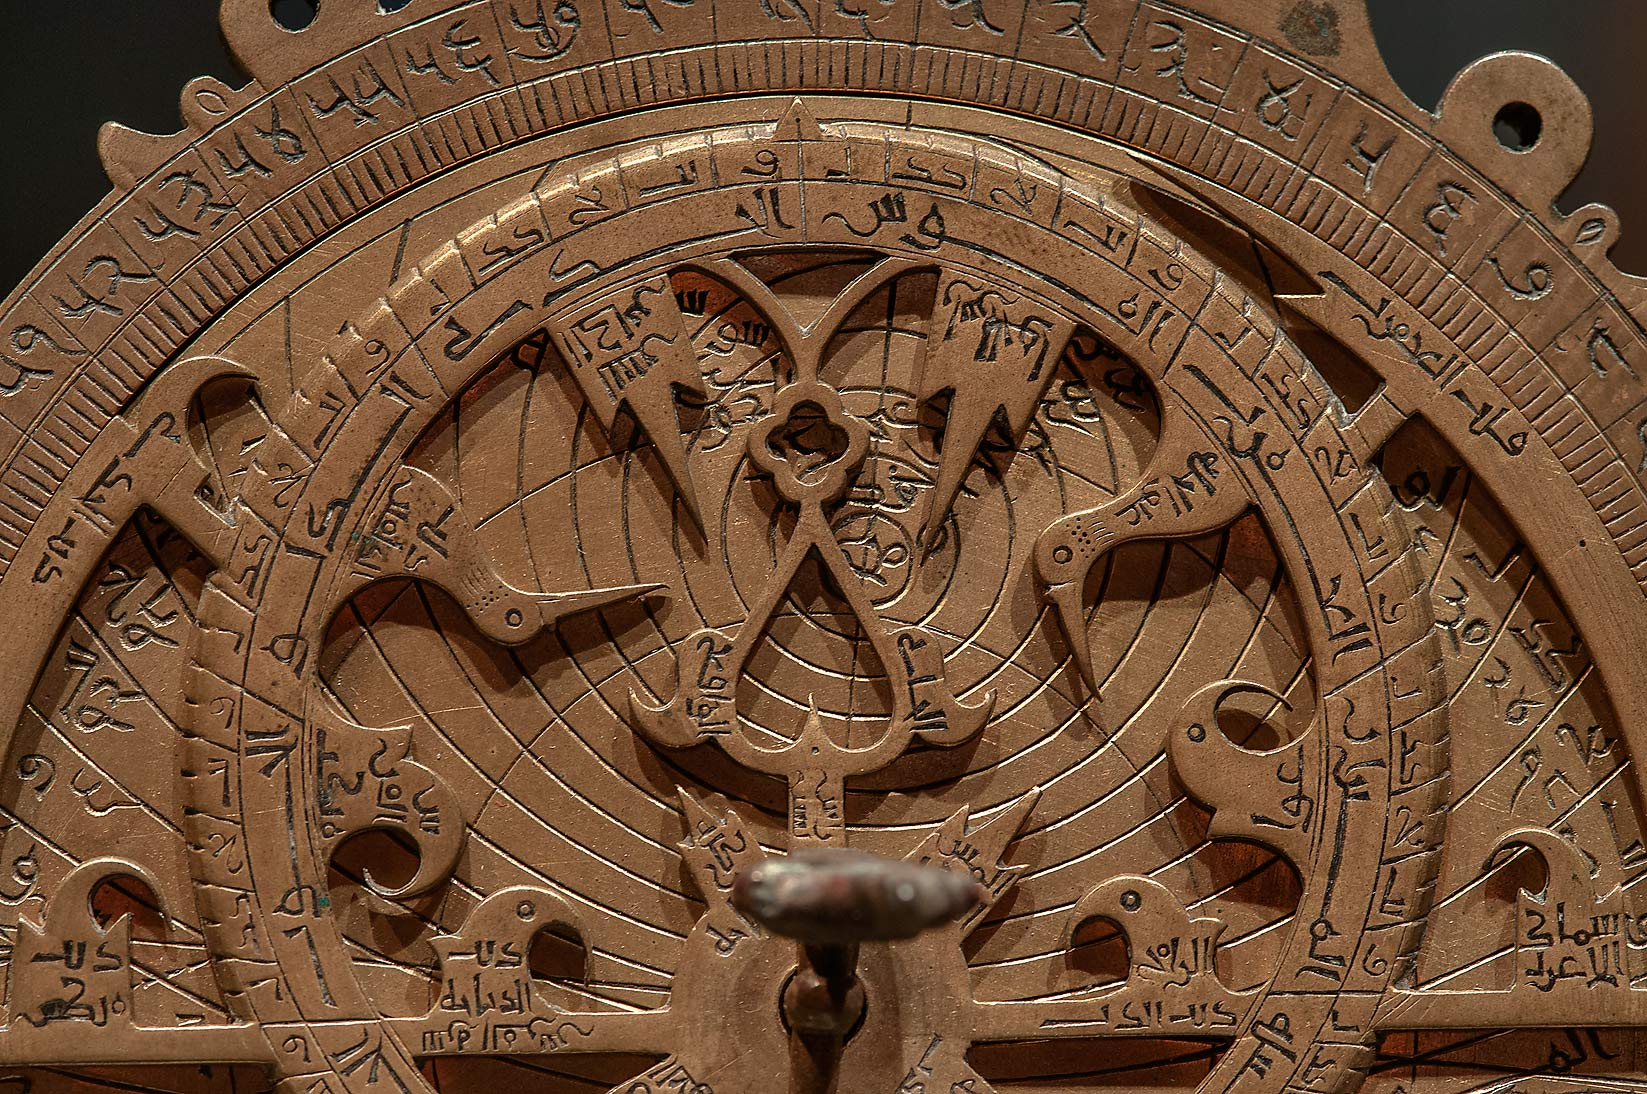 Details of brass astrolabe on display in Museum of Islamic Art. Doha, Qatar